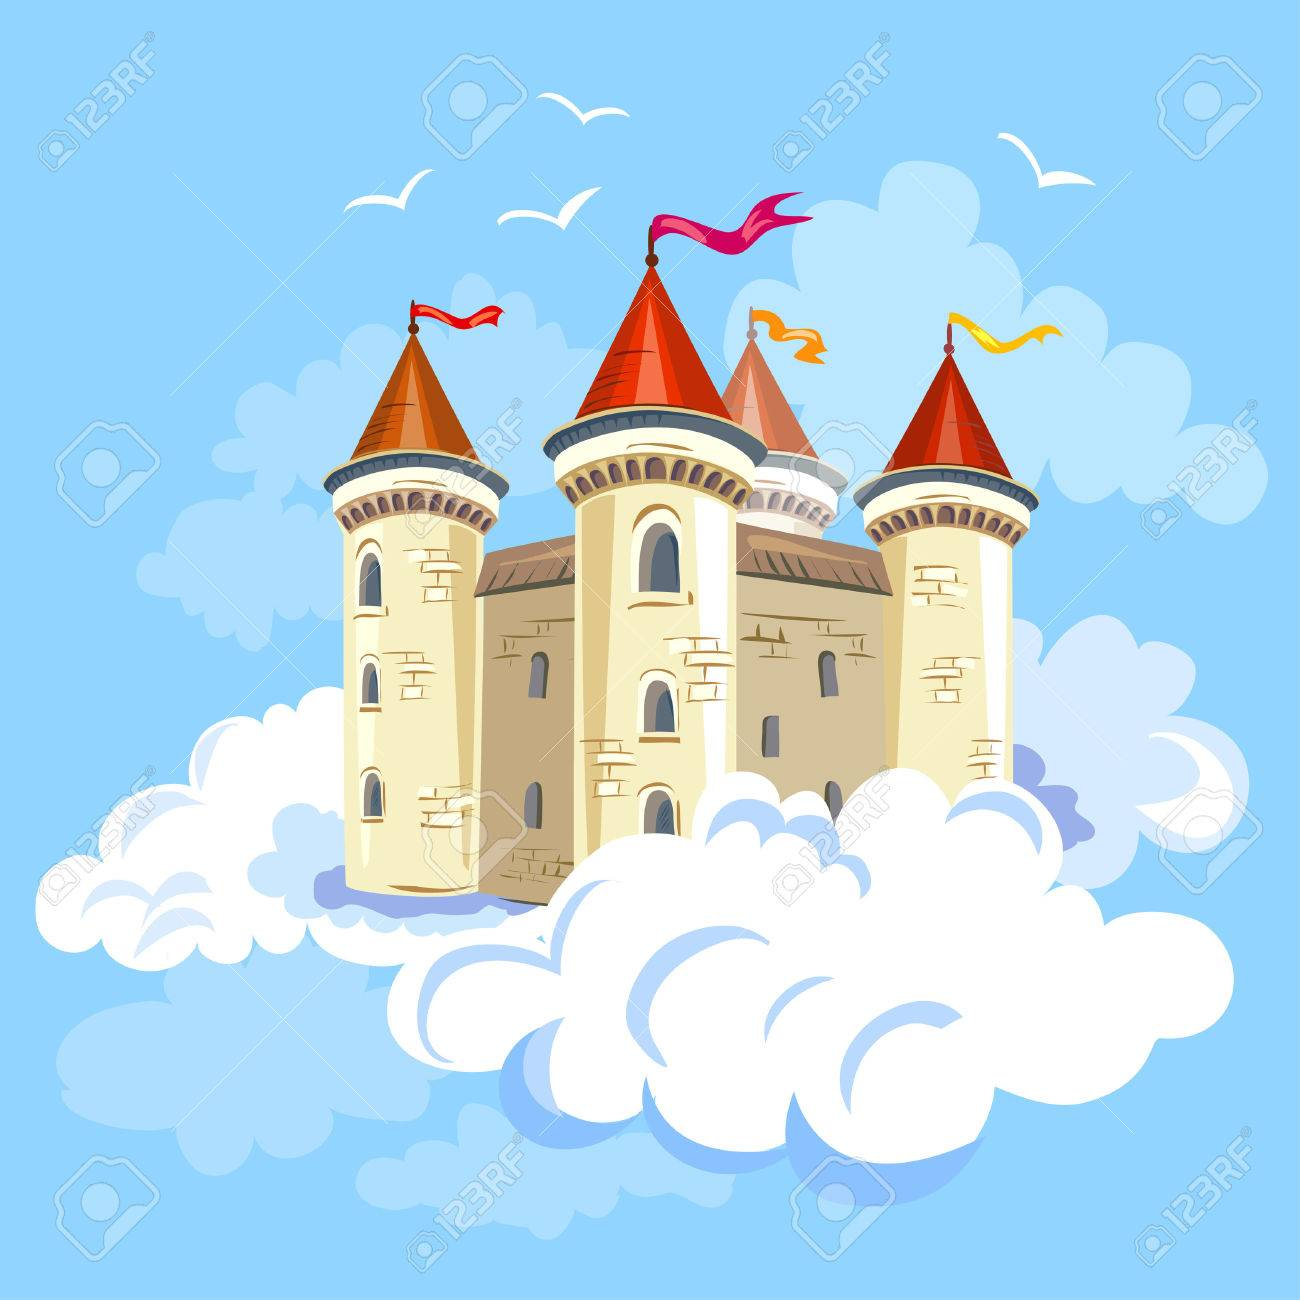 fairy castle in the air in the clouds. vector illustration Standard-Bild - 33214510